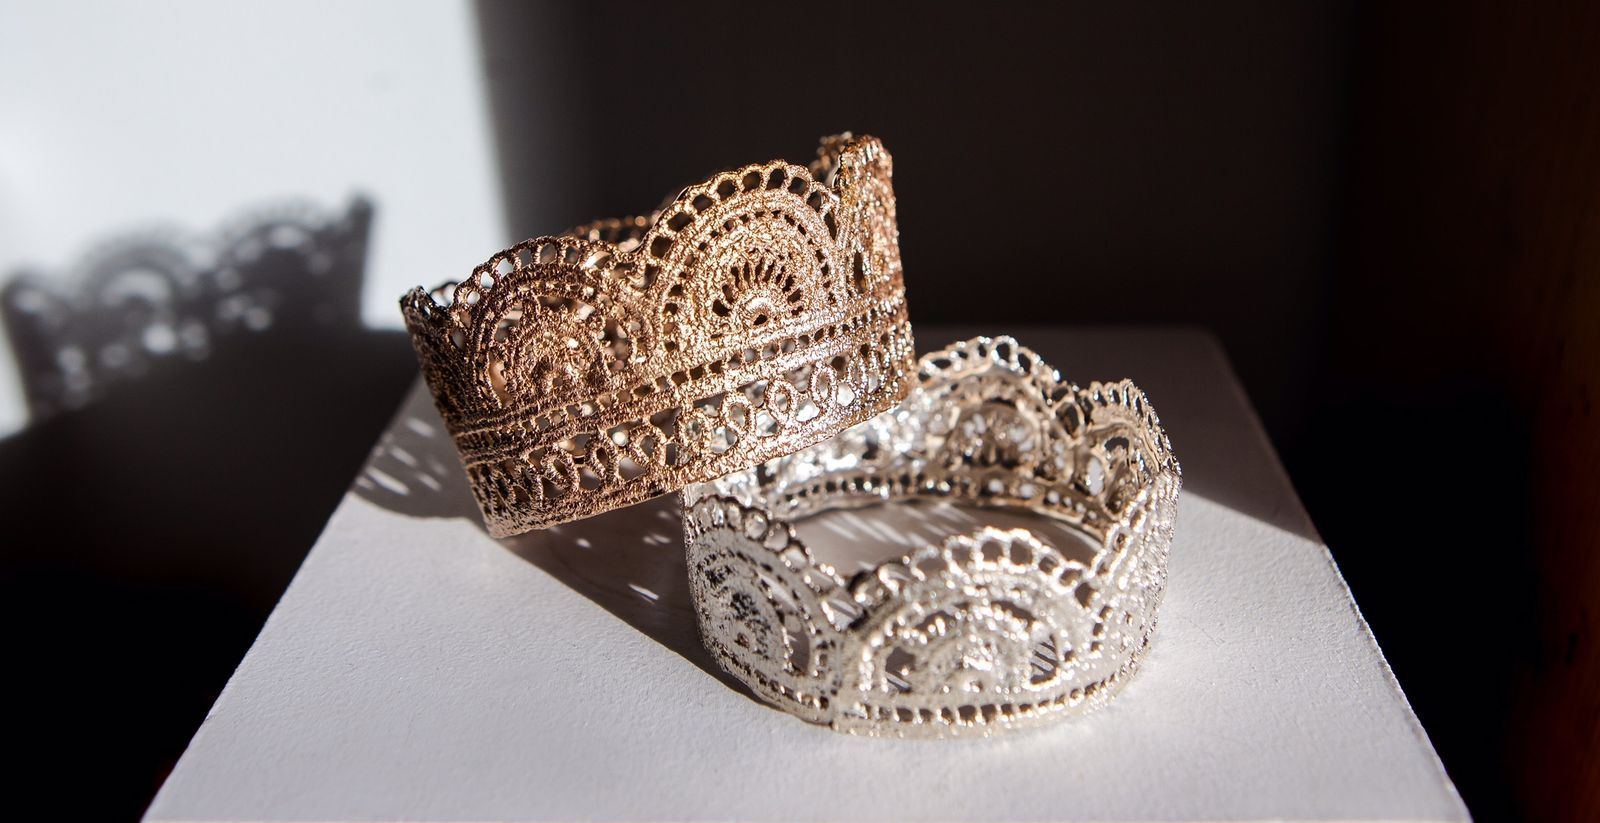 Two of Gabe's cuff bracelets, made from a lace veil.